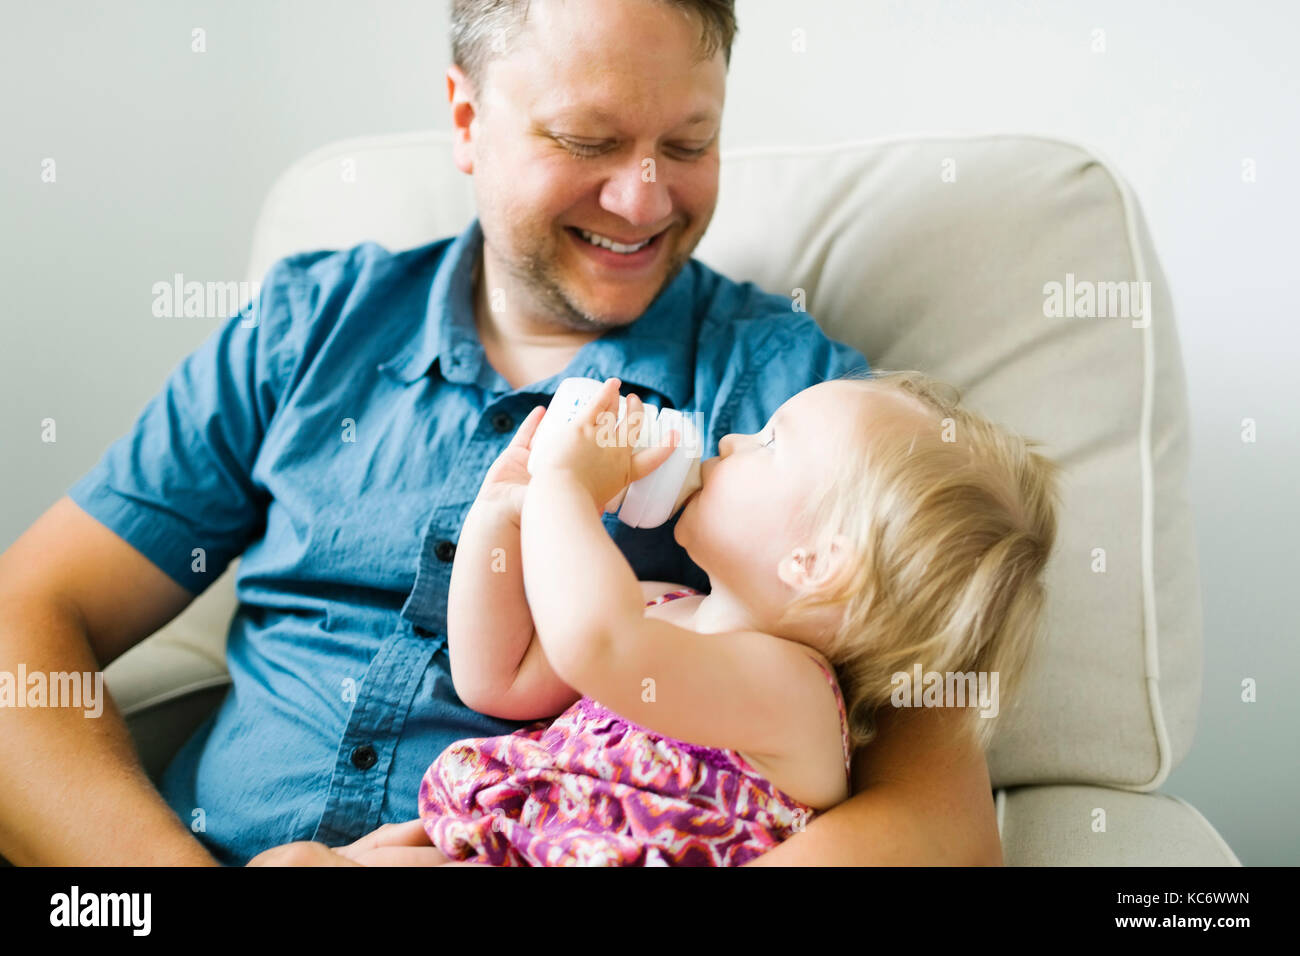 Father feeding baby girl (12-17 months) in living room - Stock Image